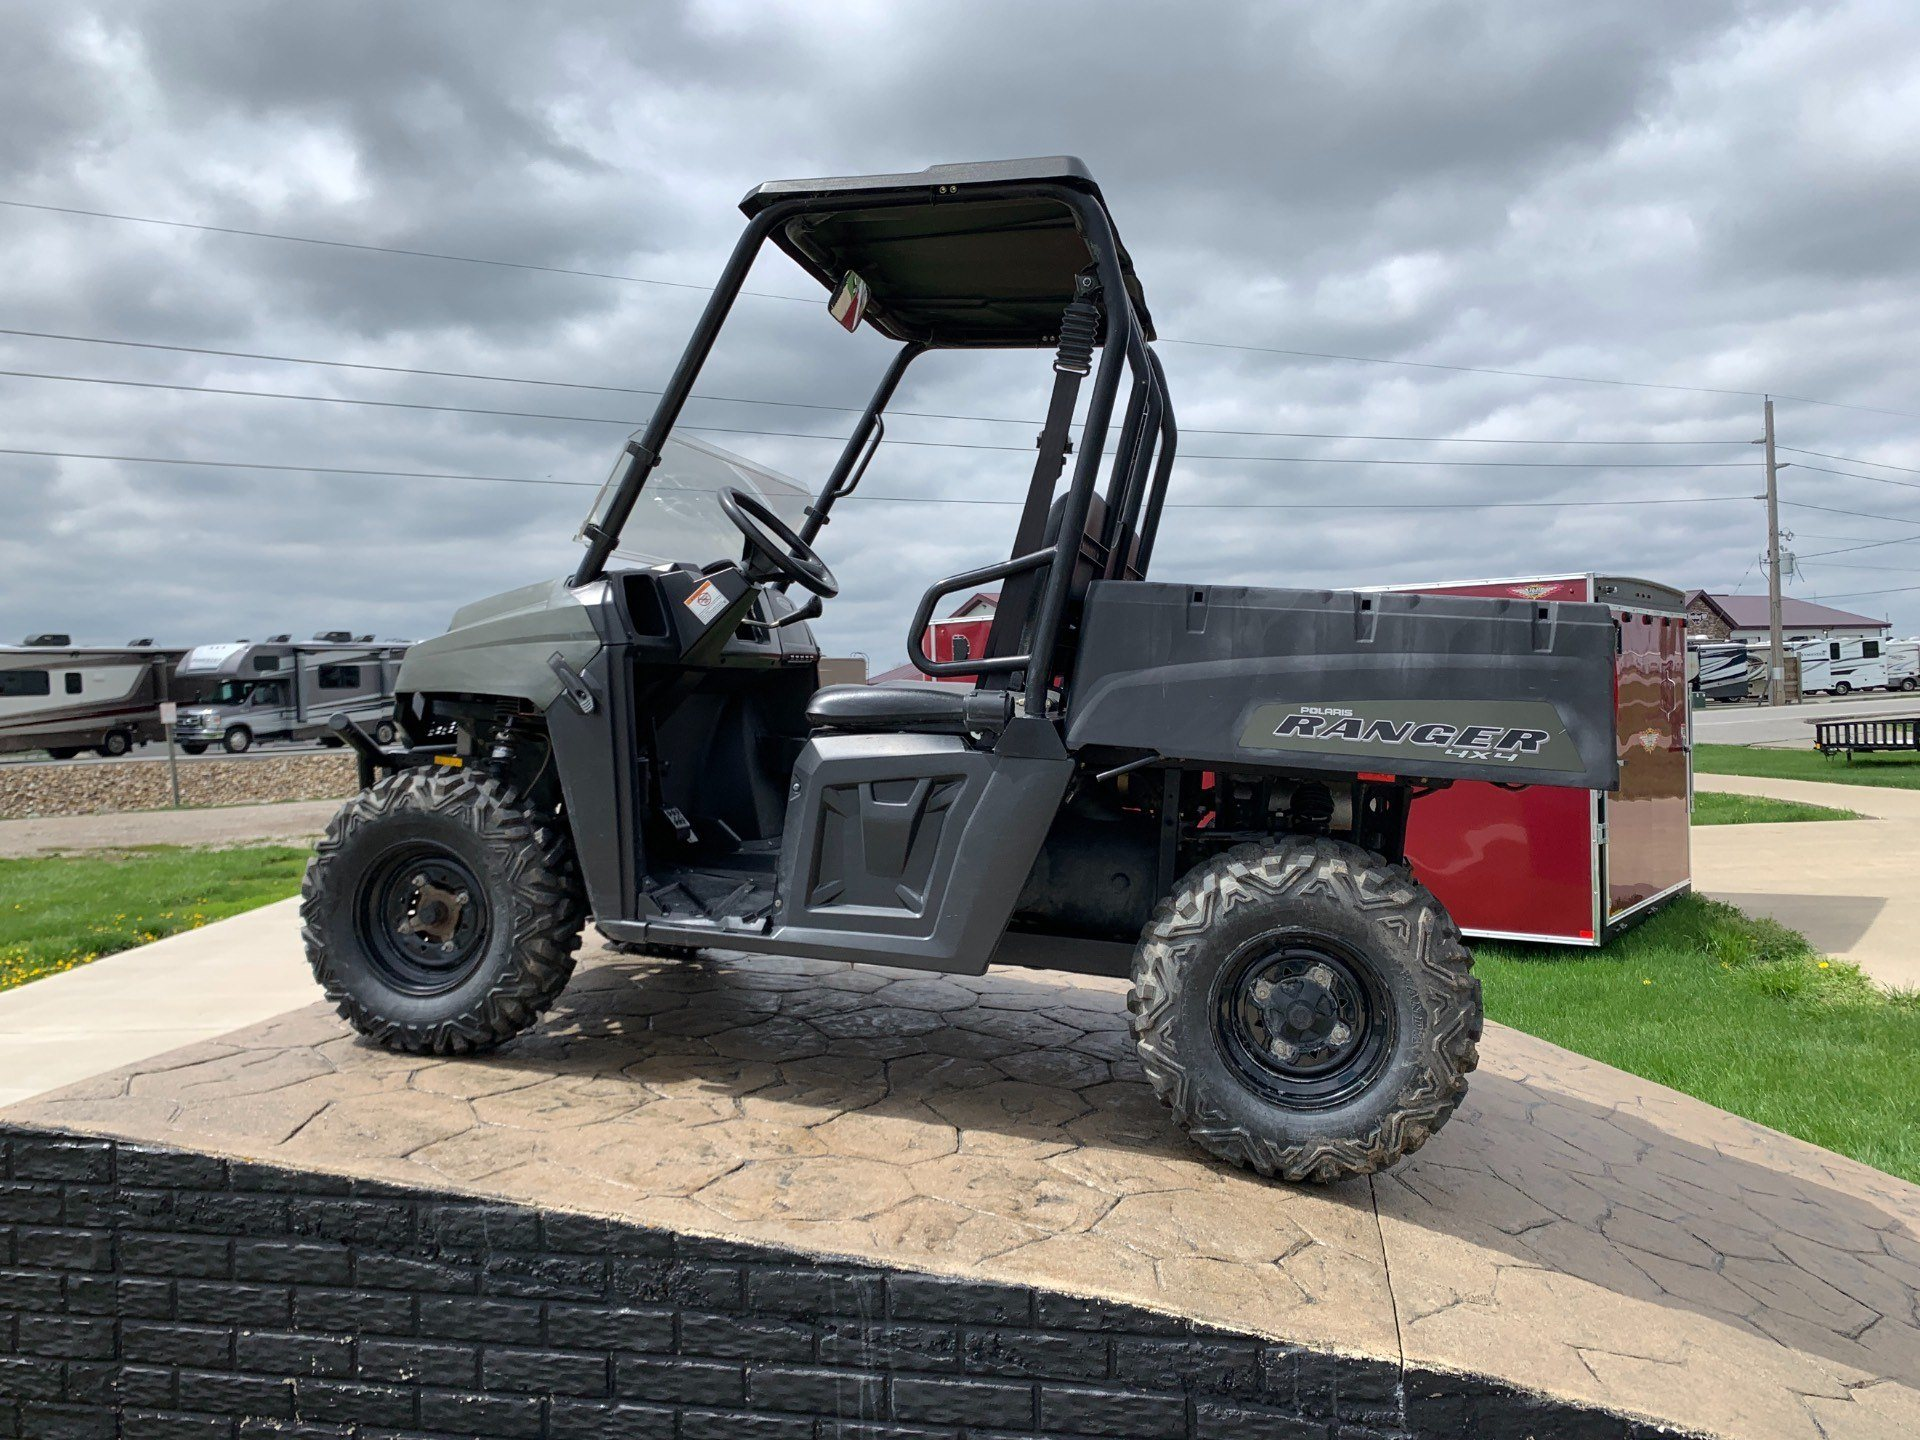 2013 Polaris Ranger® 500 EFI in Ottumwa, Iowa - Photo 4